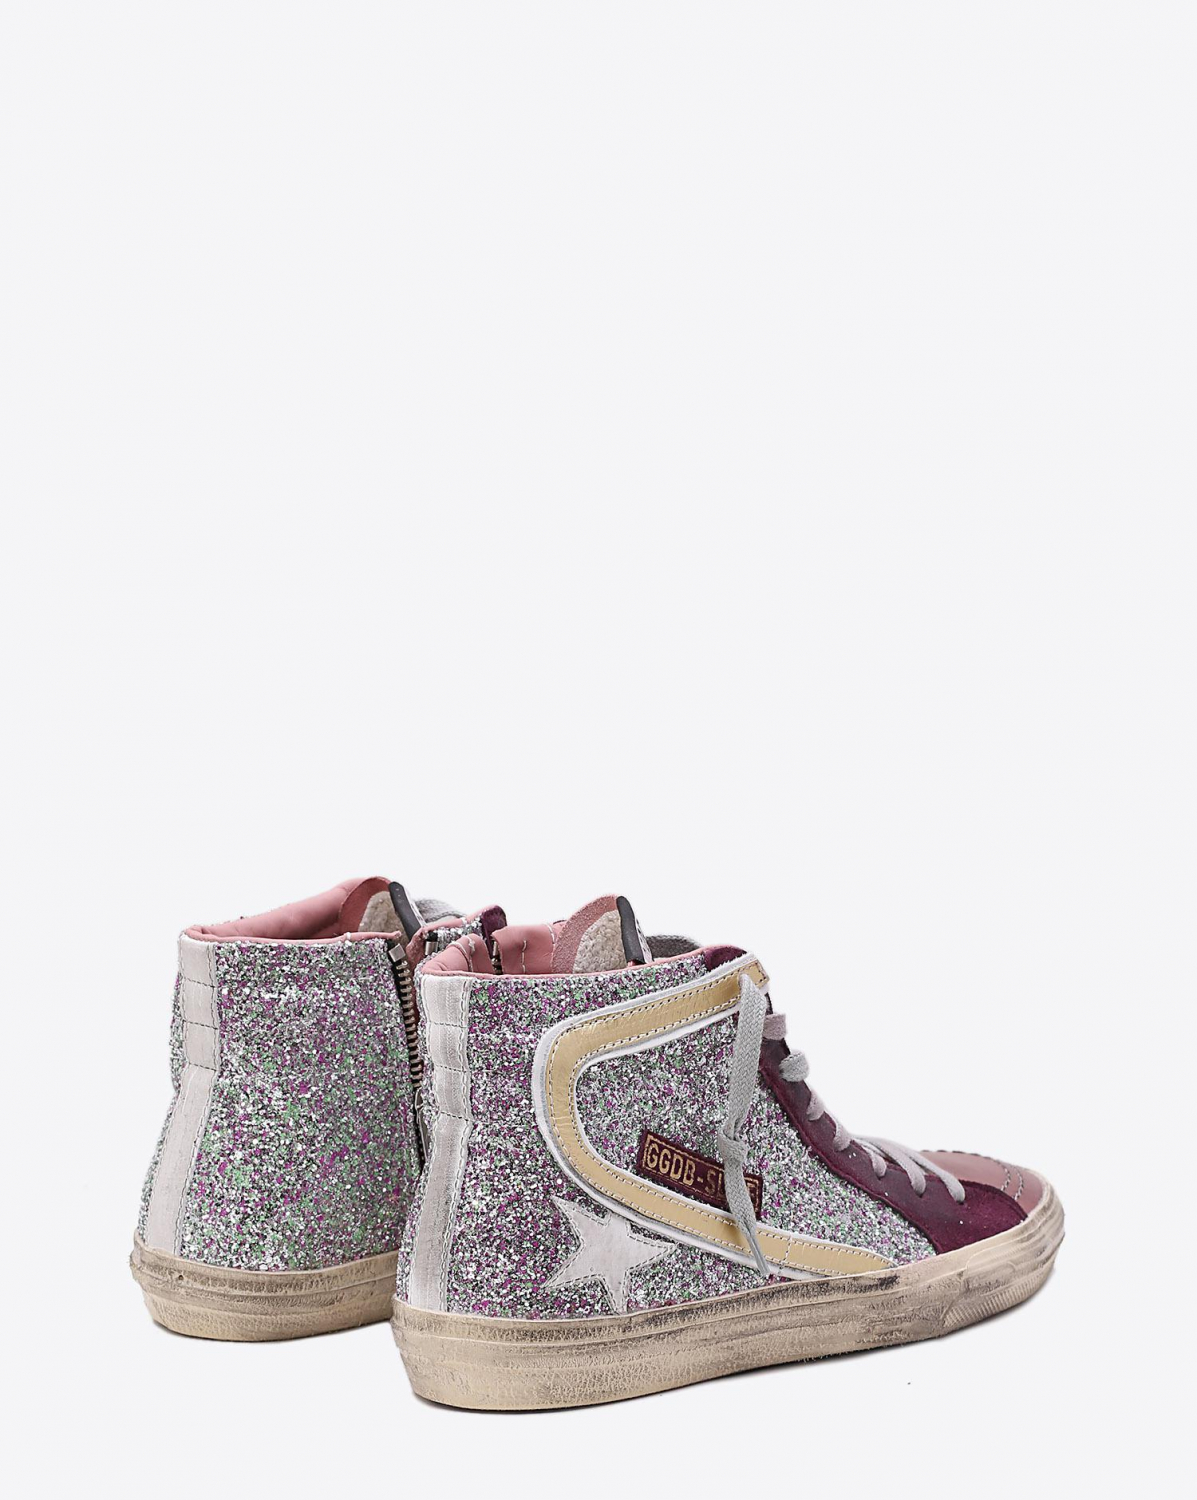 Golden Goose Woman Pré-Collection Sneakers Slide Cyclamin Glitter  White Star